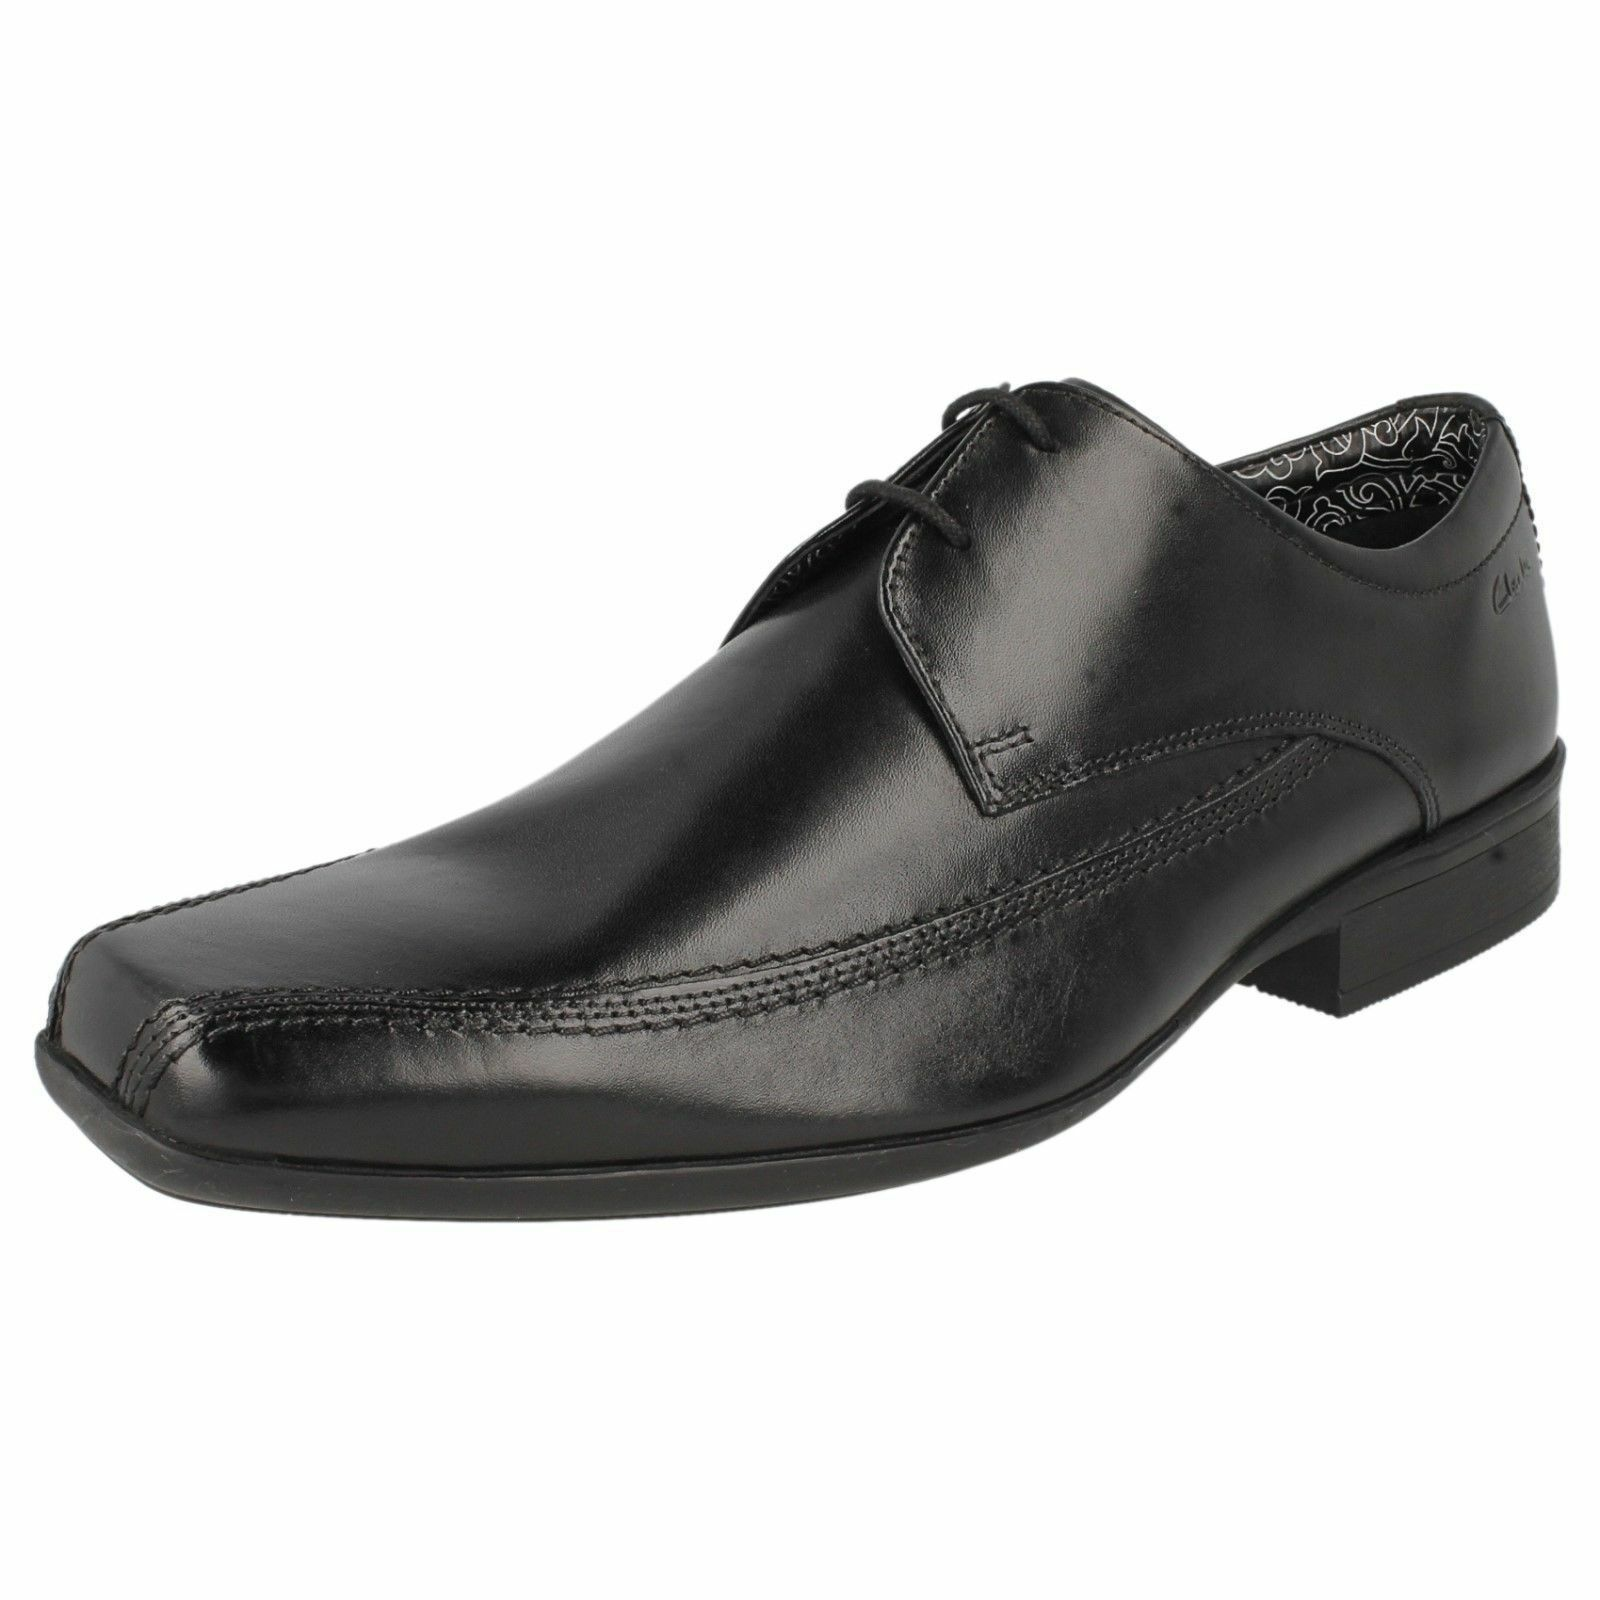 CLARKS Aze Day Mens Black Leather Squared Toe Lace Up Shoes